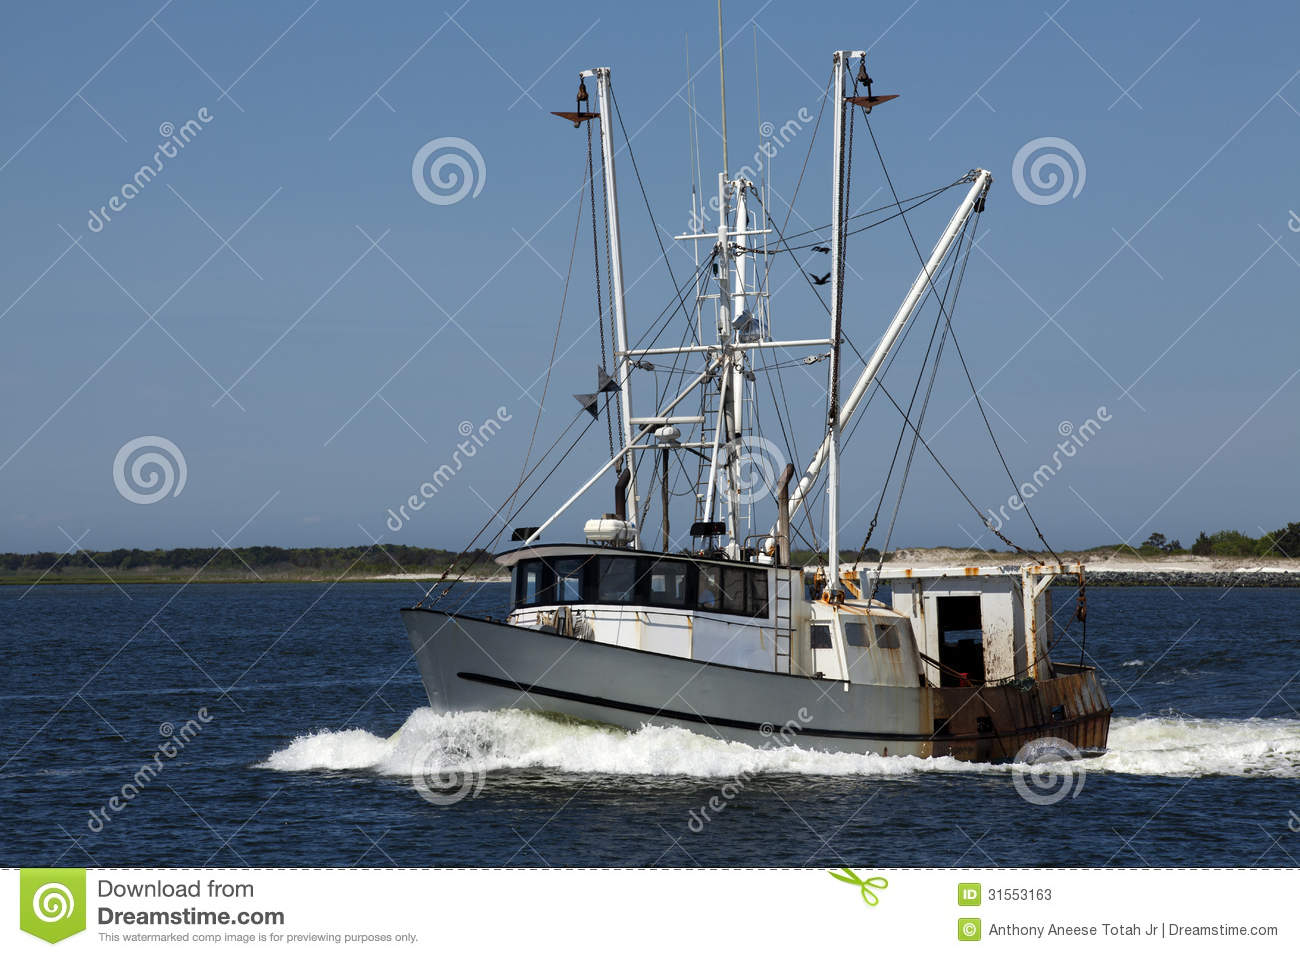 Blog archives backuppaper for What is commercial fishing